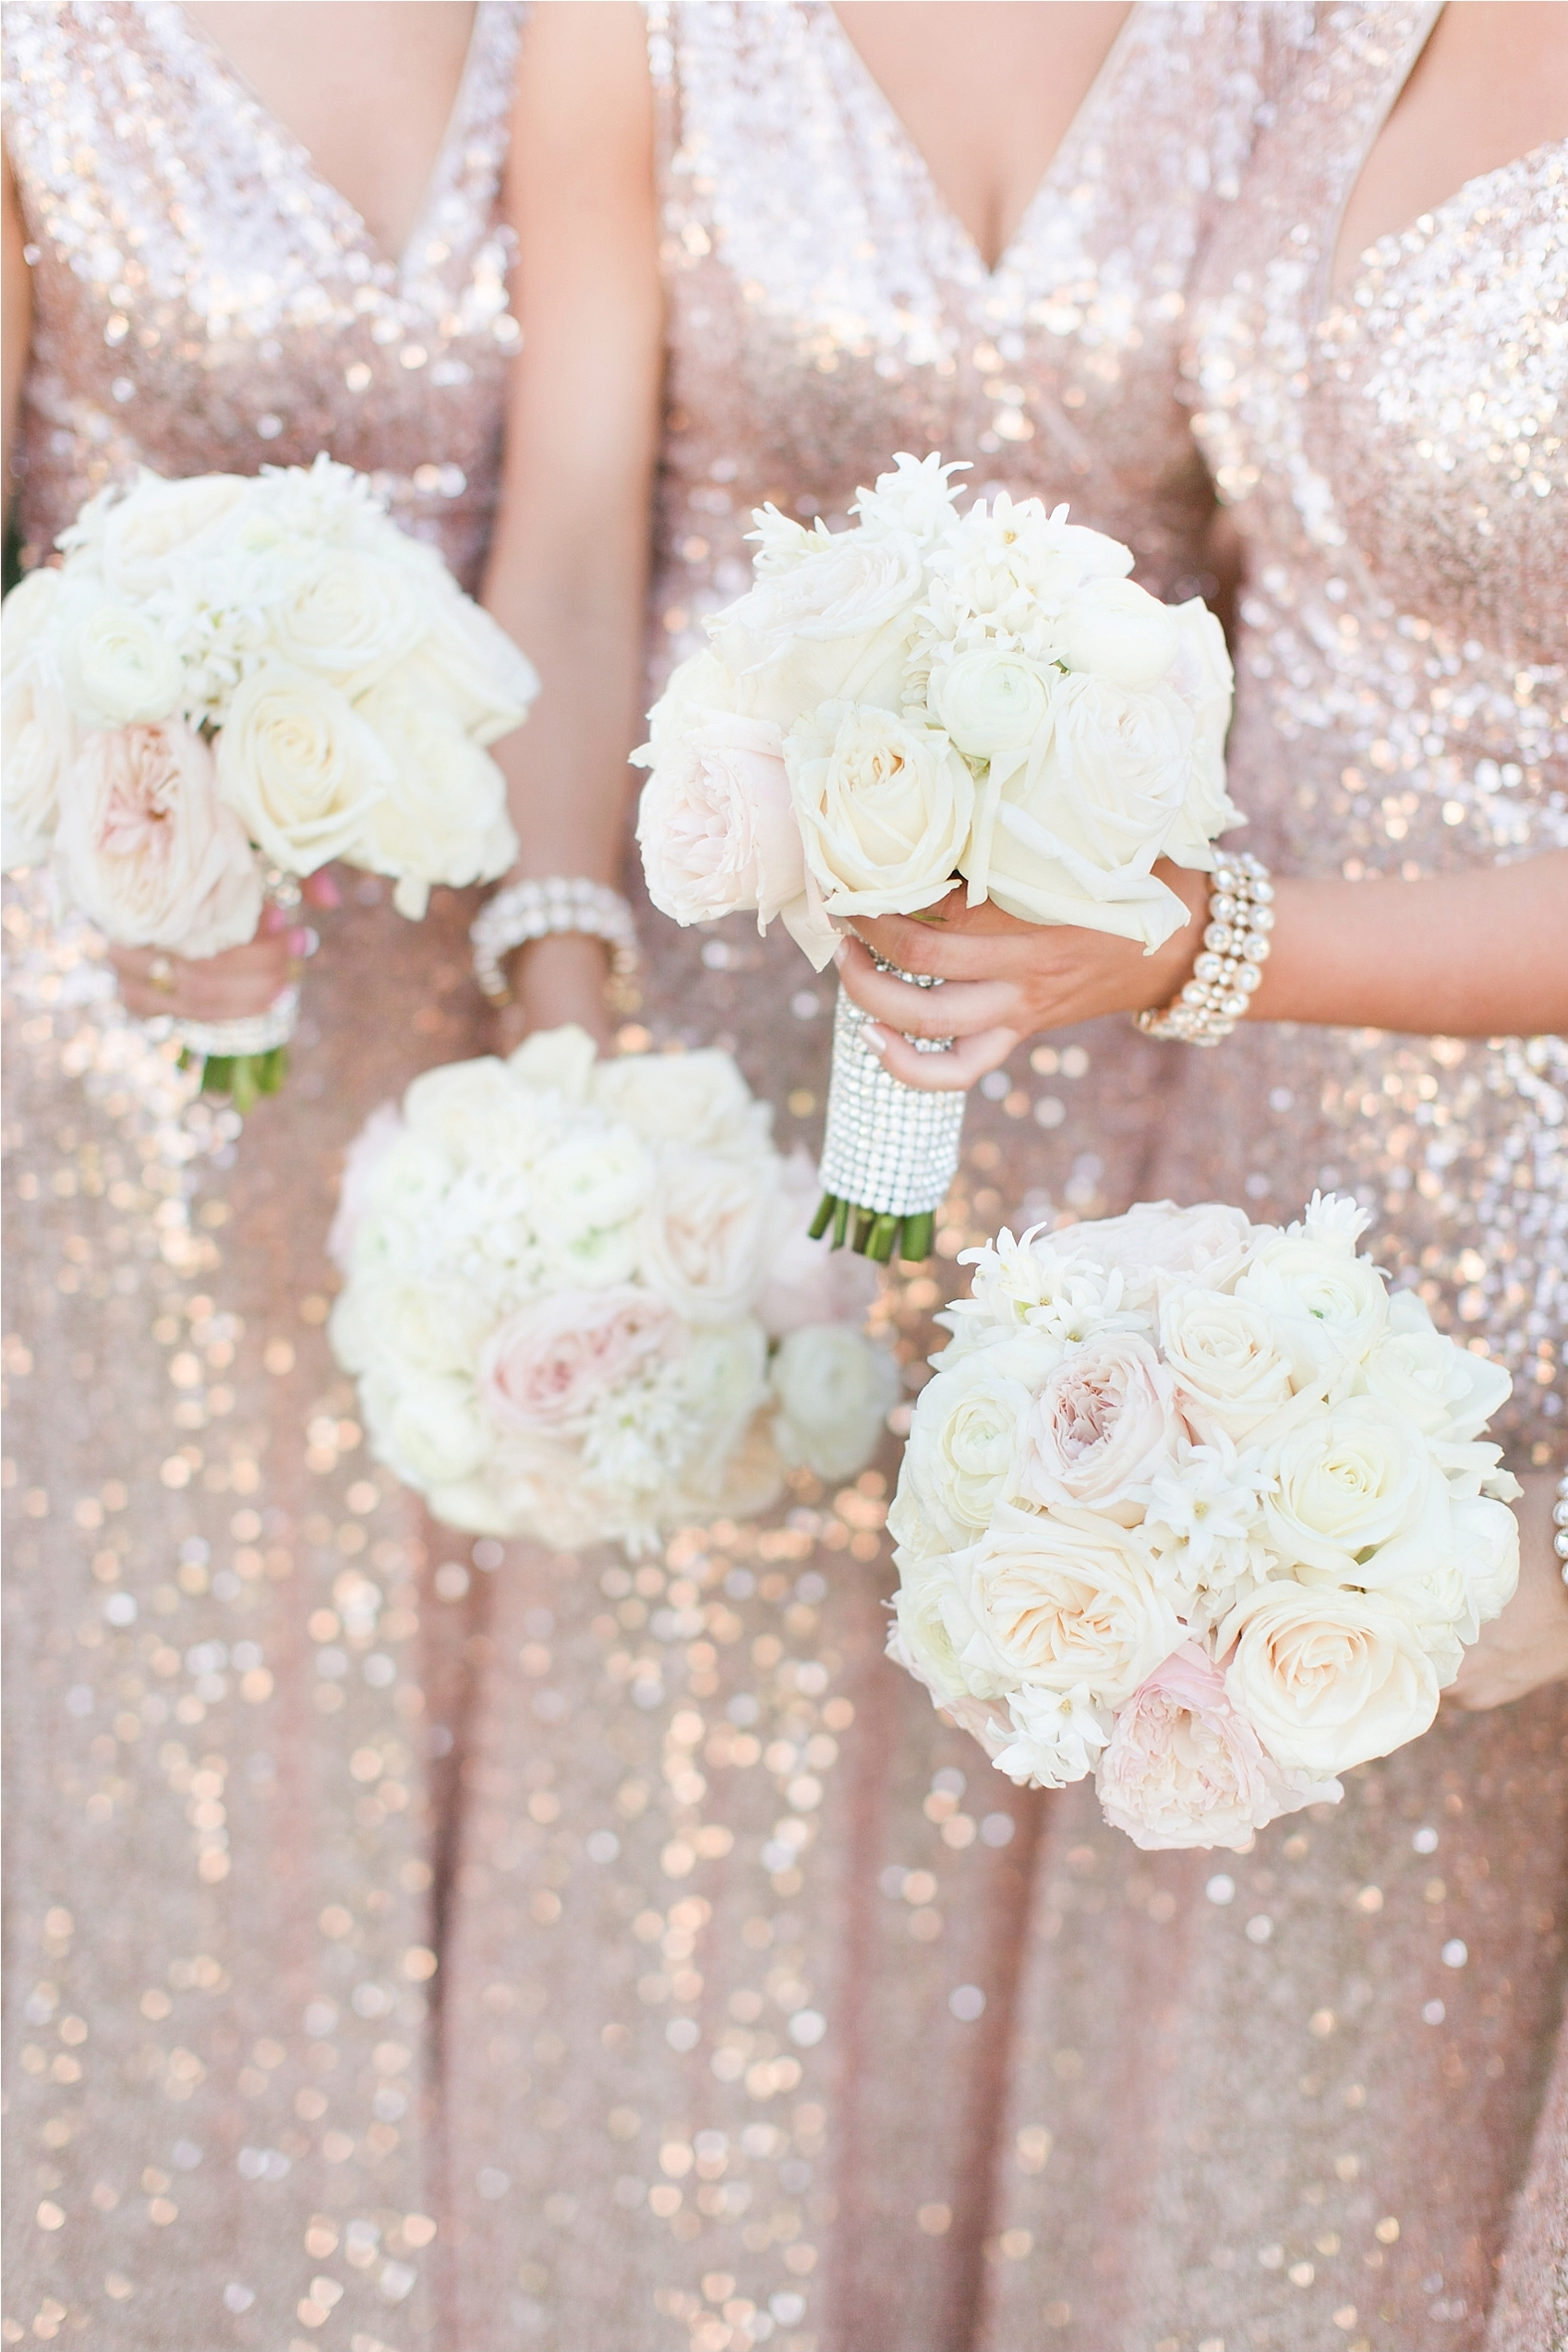 10 Ideas For White Rose Wedding Flowers For Your Ceremony And Reception Mywedding